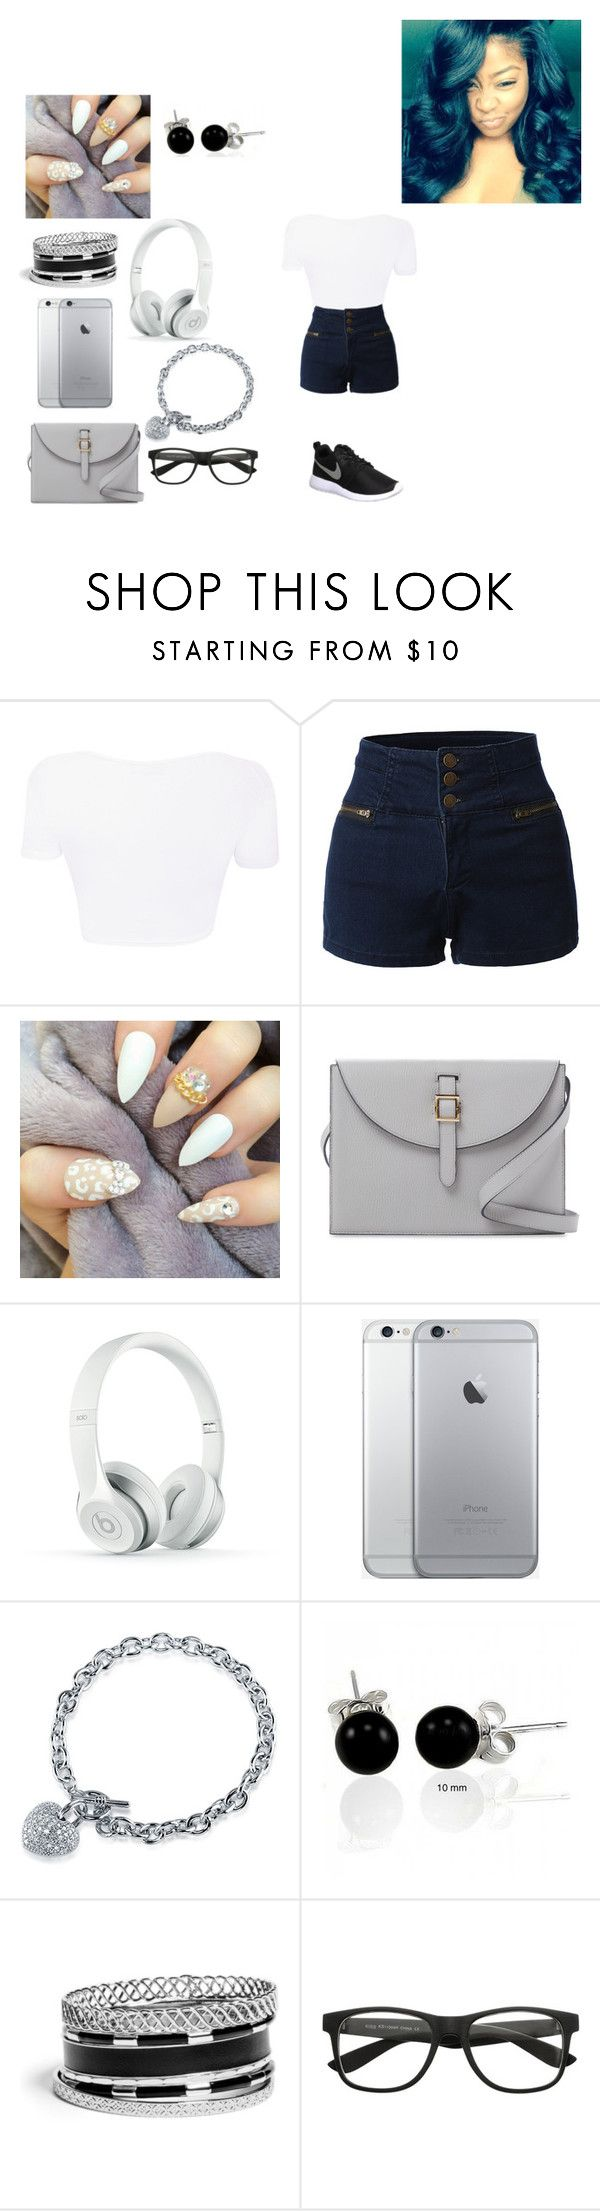 """""""white"""" by pretty-on-fleak ❤ liked on Polyvore featuring LE3NO, Meli Melo, Beats by Dr. Dre, BERRICLE, Bling Jewelry, GUESS and NIKE"""